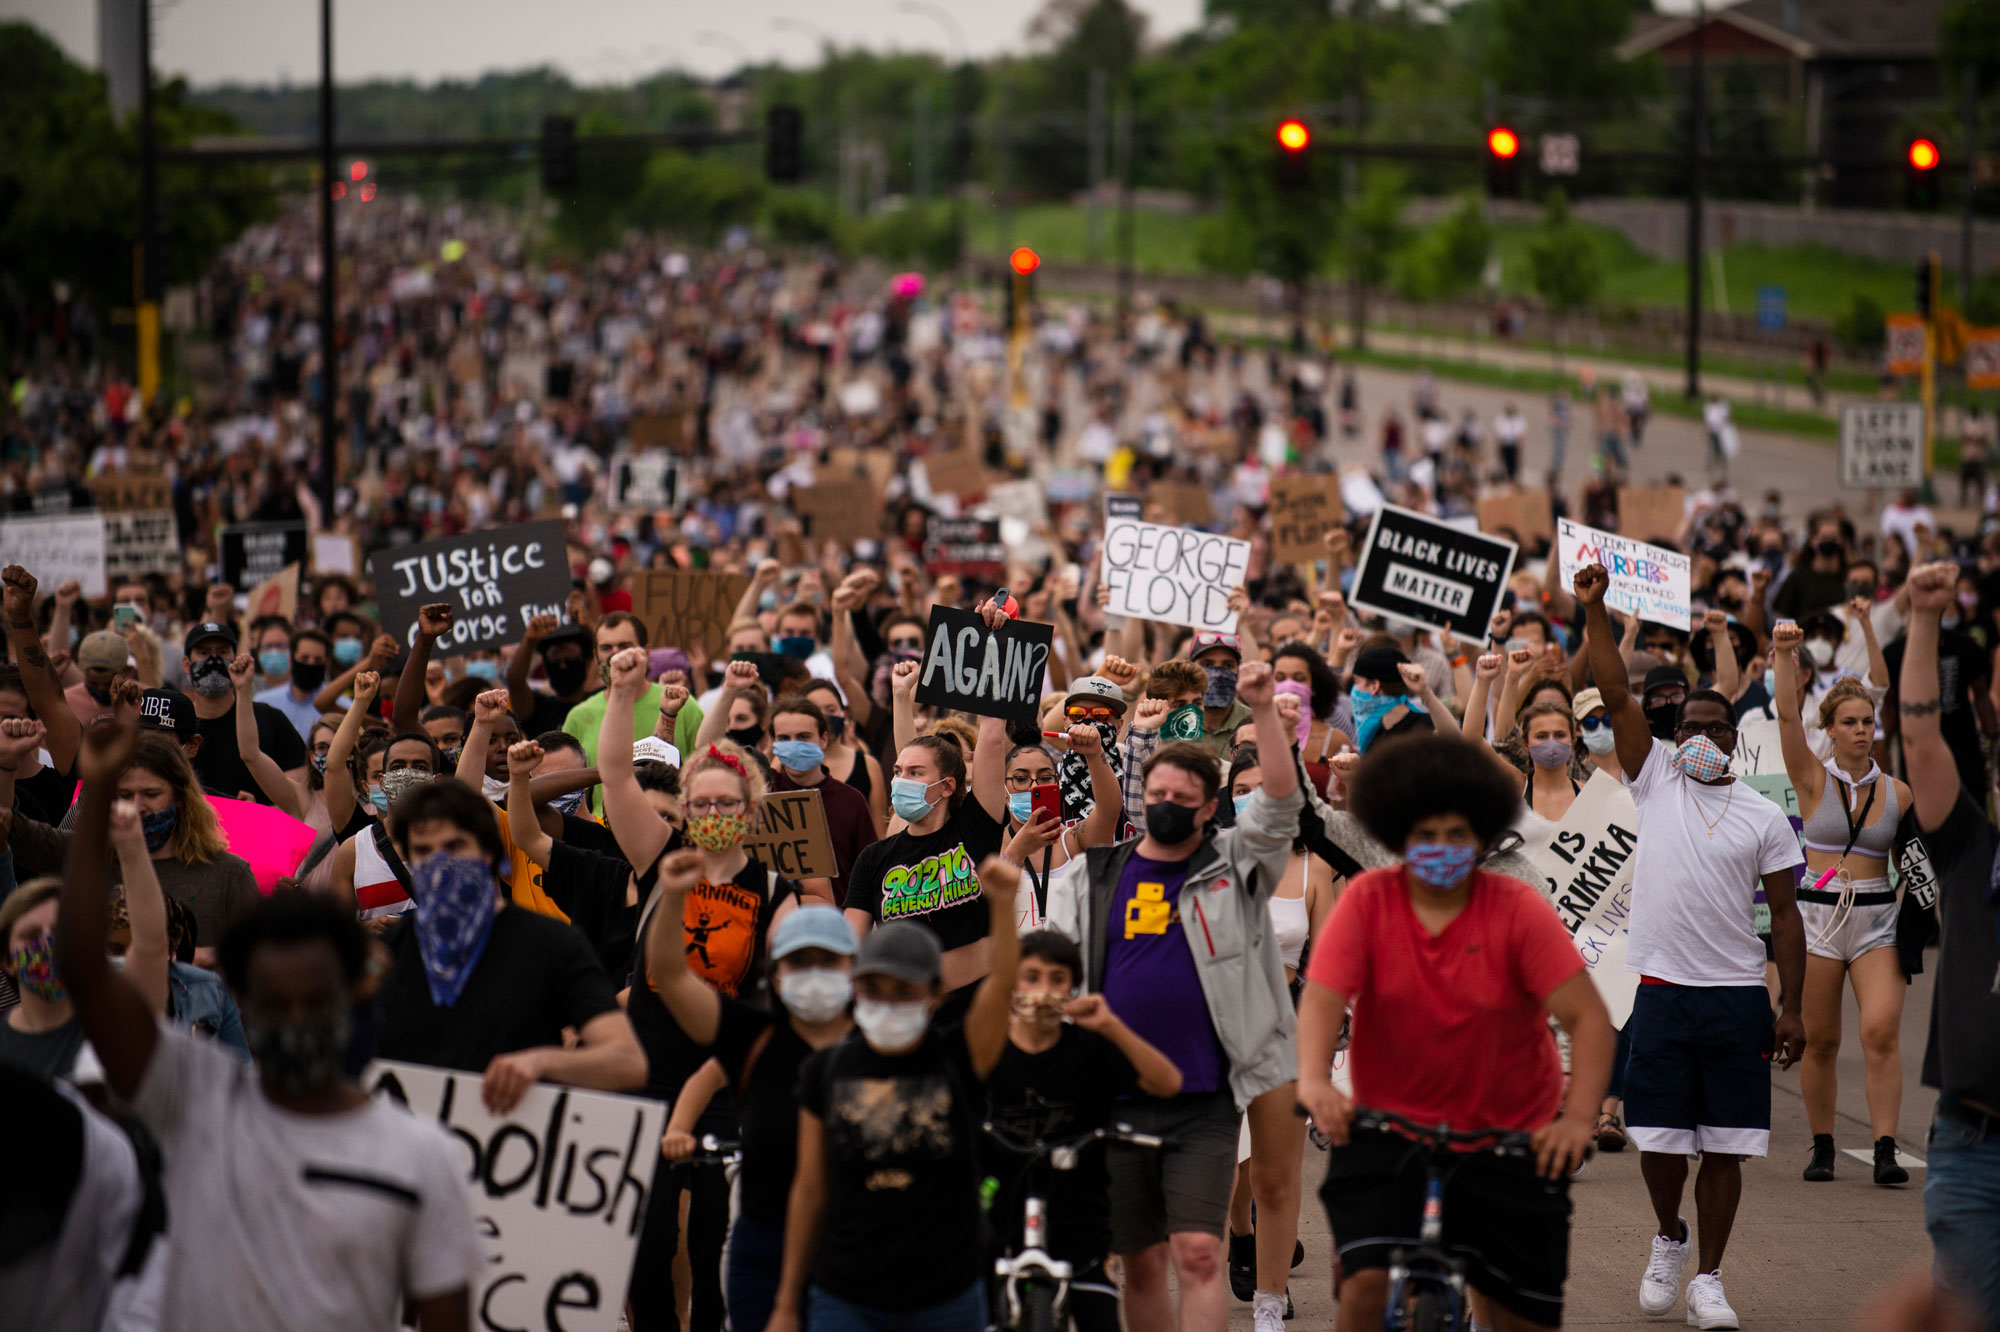 Protesters march on Hiawatha Avenue while decrying the killing of George Floyd on May 26 in Minneapolis, Minnesota.